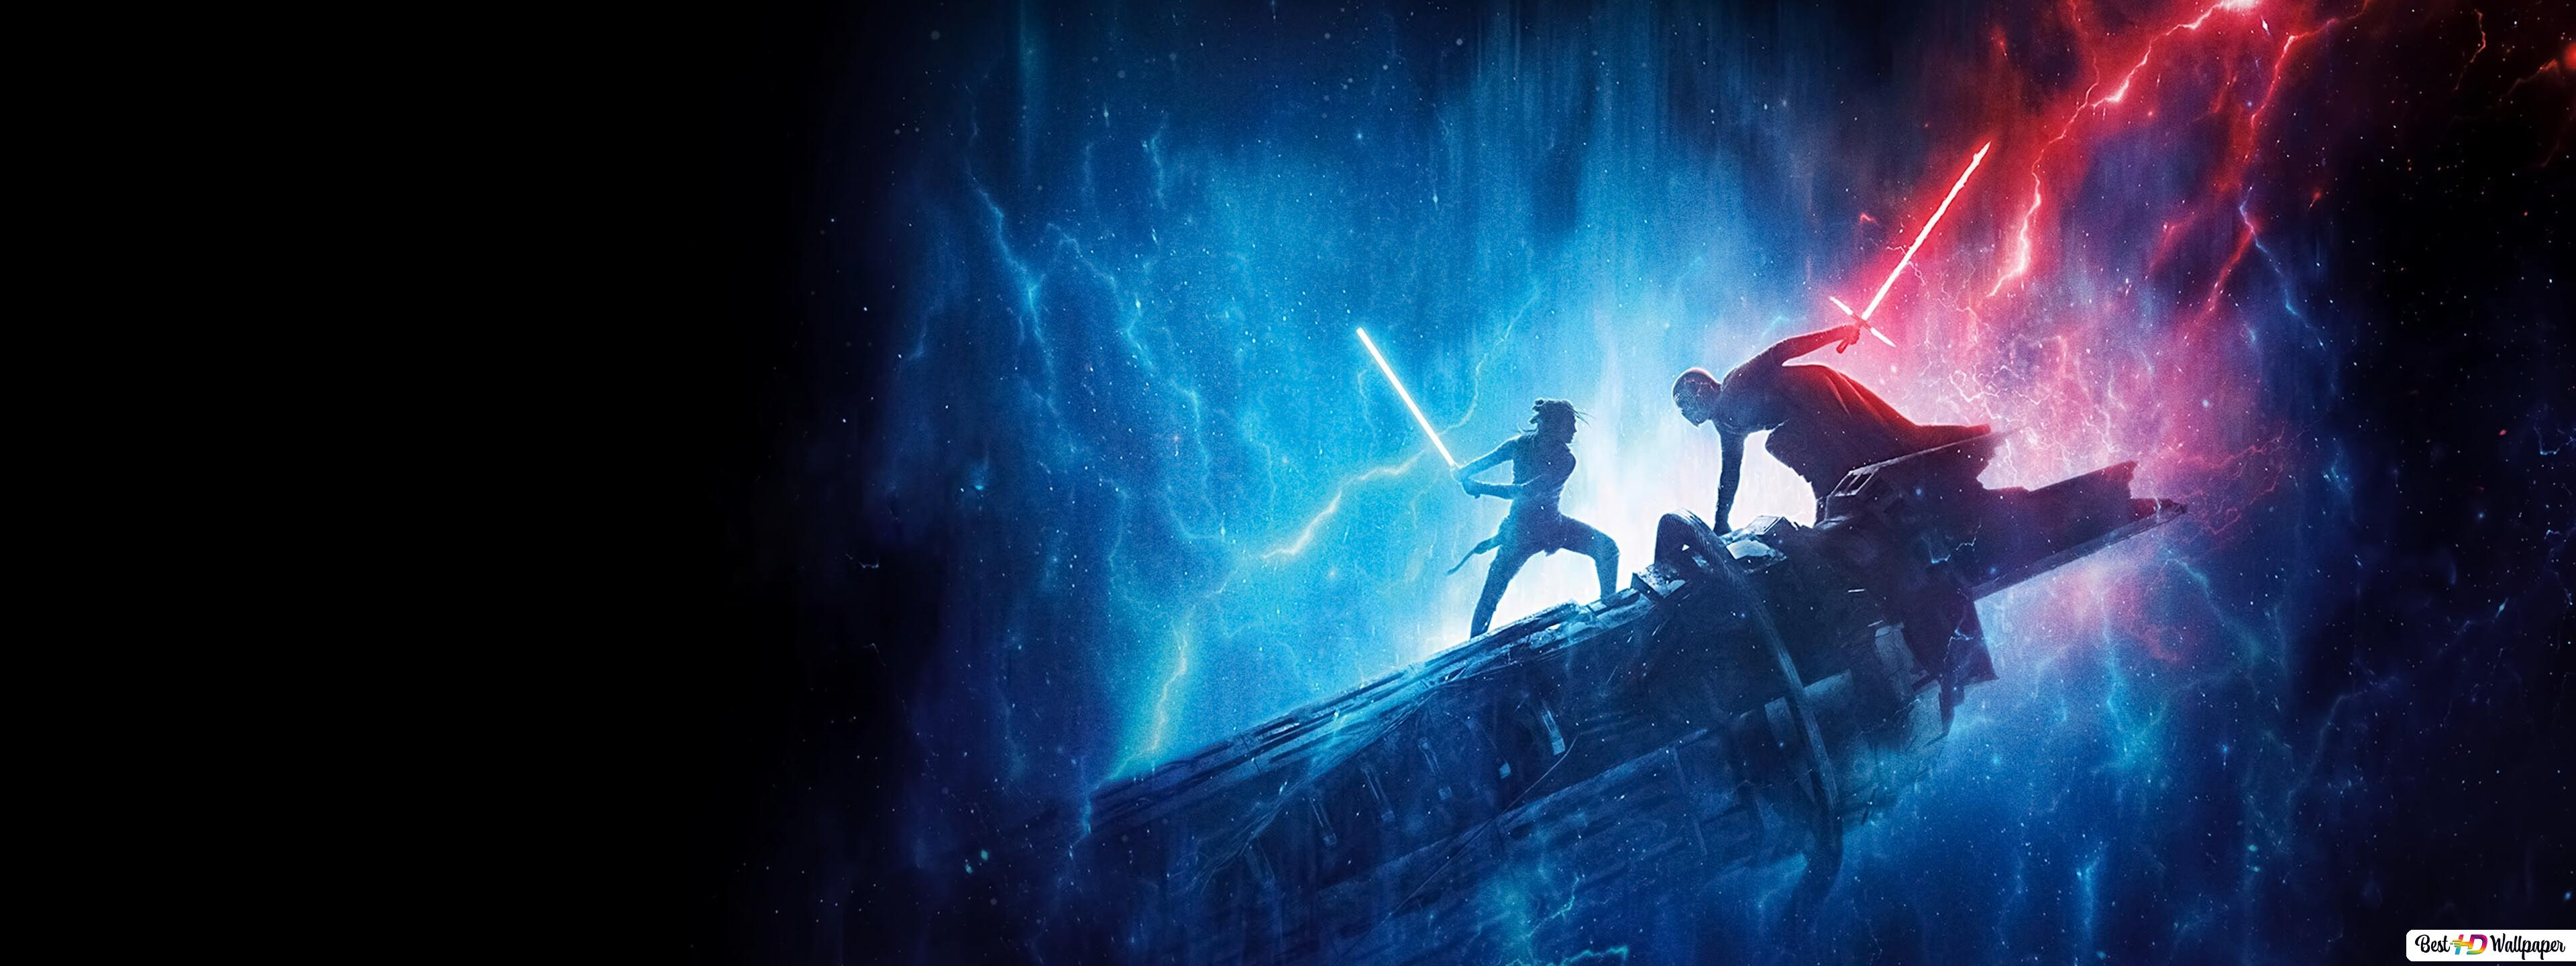 Star Wars Rey S Blue Lightsaber Vs Kylo Ren S Red Lightsaber Hd Wallpaper Download